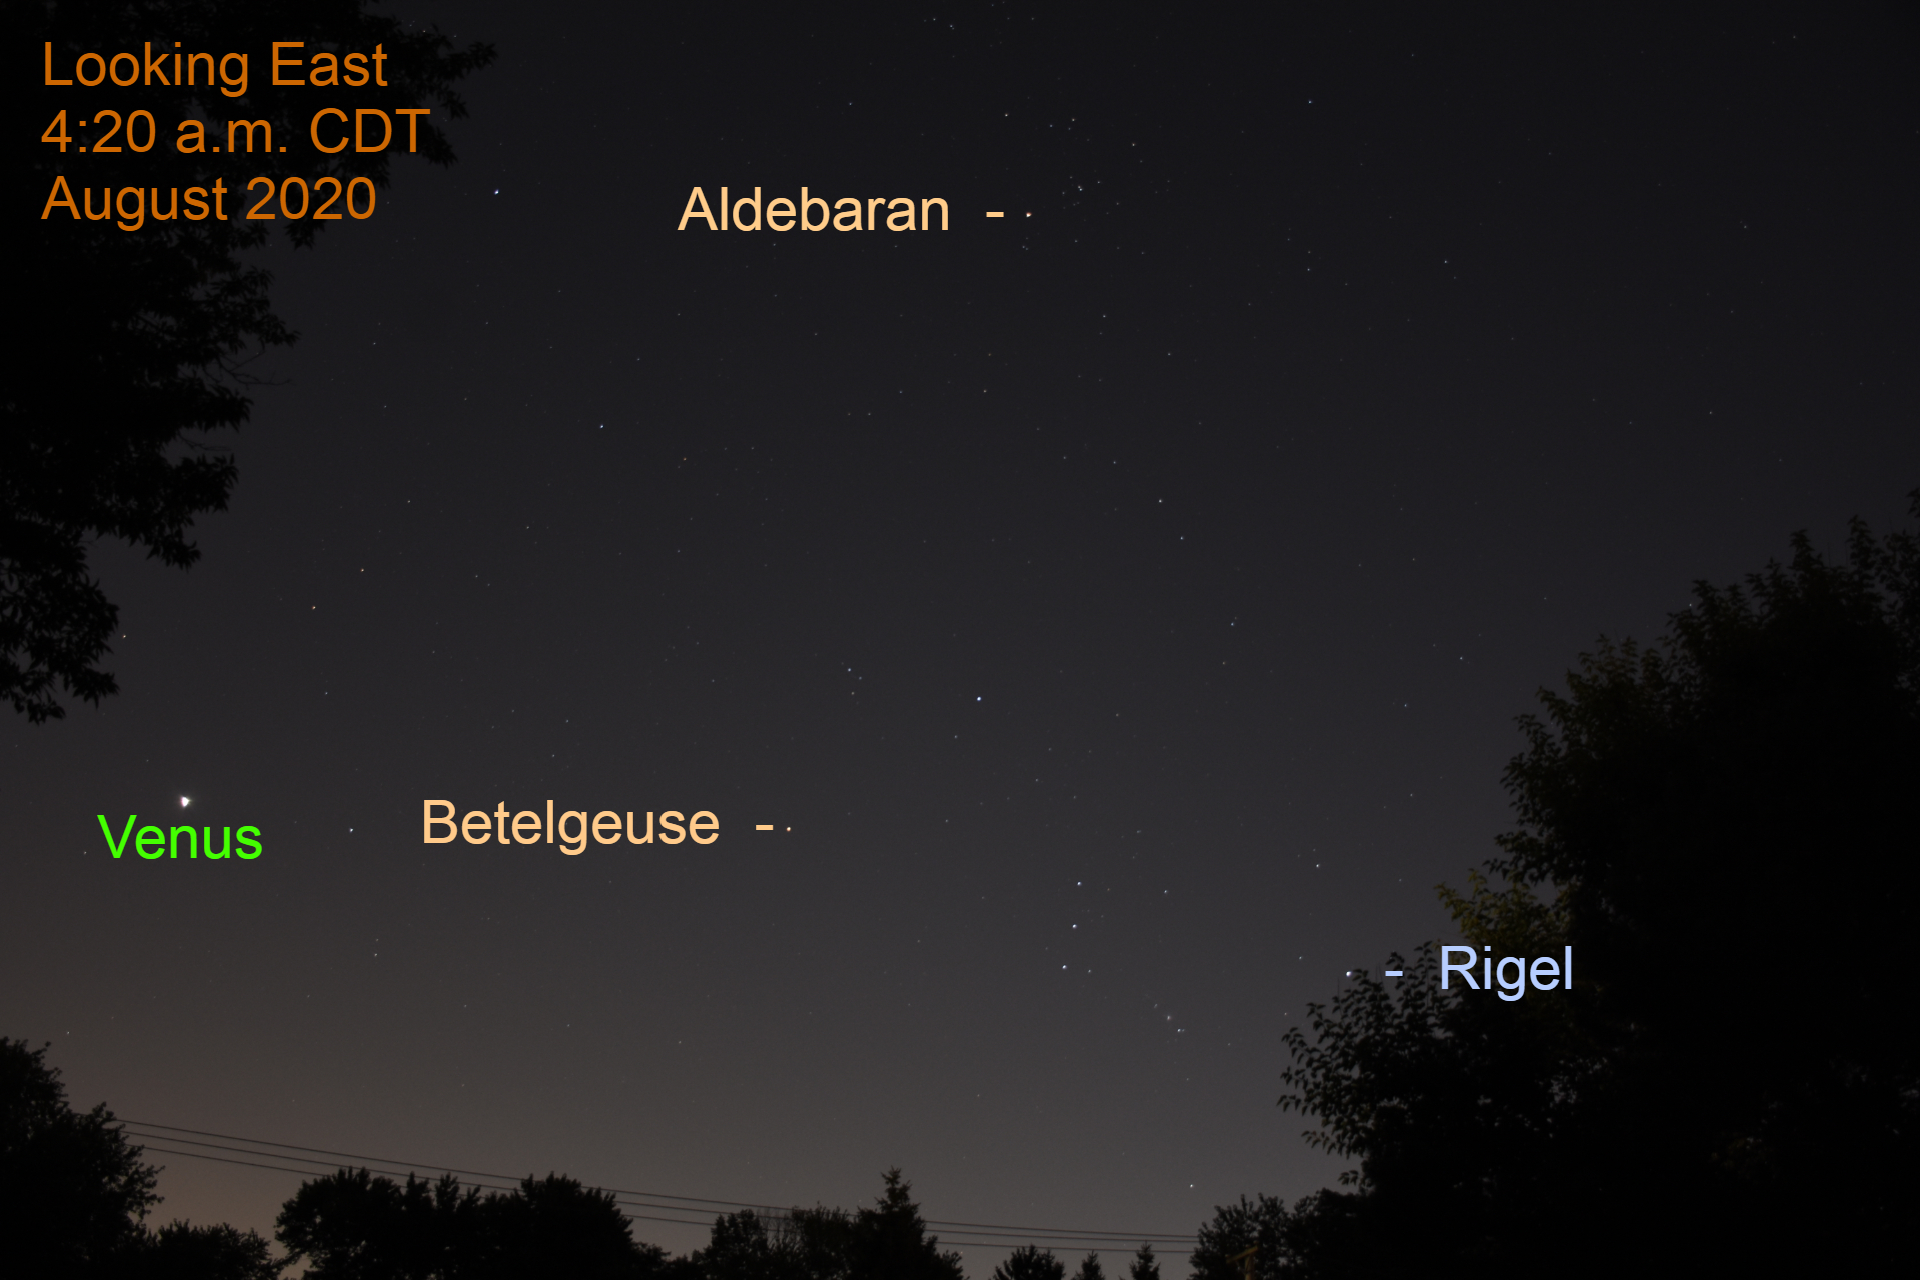 Venus appears with Orion